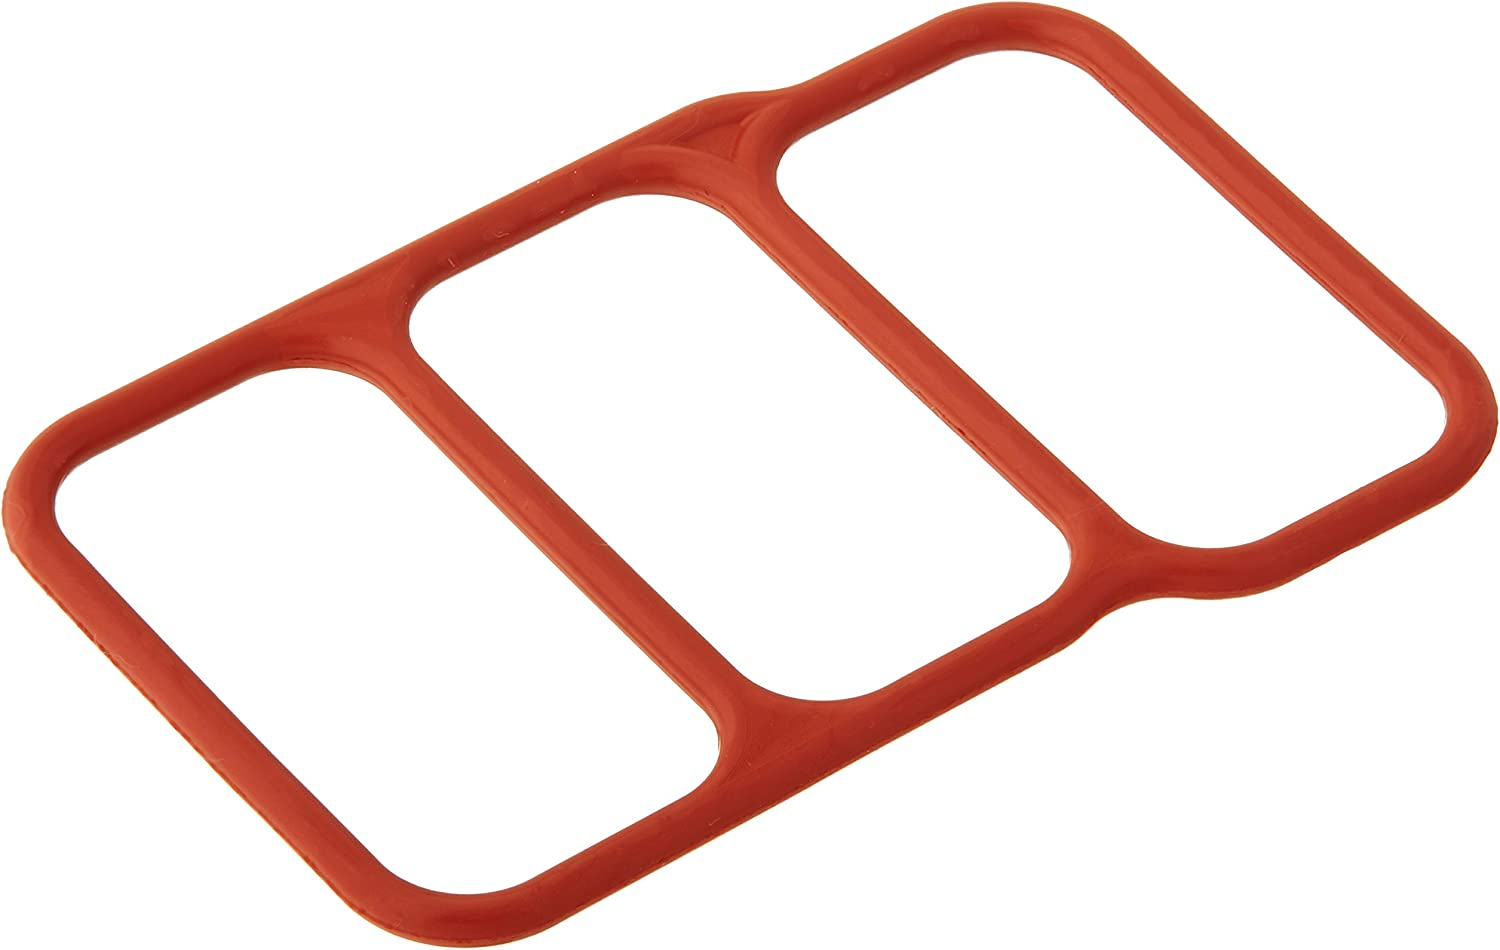 MAHLE Original B32047 Fuel Injection Idle Air Control Valve Gasket